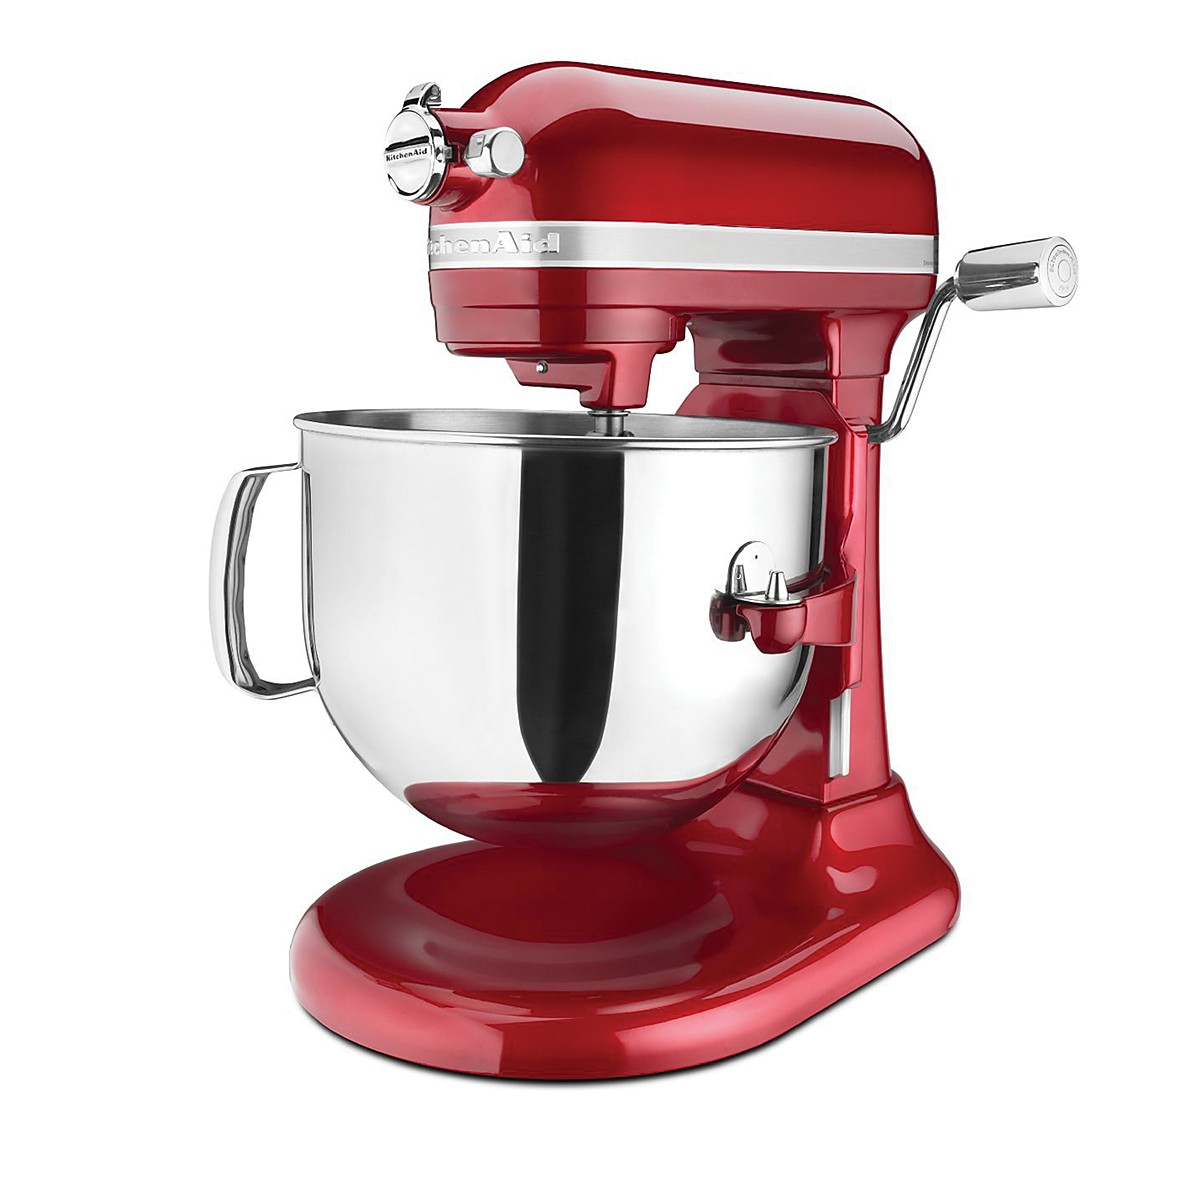 KitchenAid Pro Line 7-Quart Bowl Lift Stand Mixer #KSM7586P ...